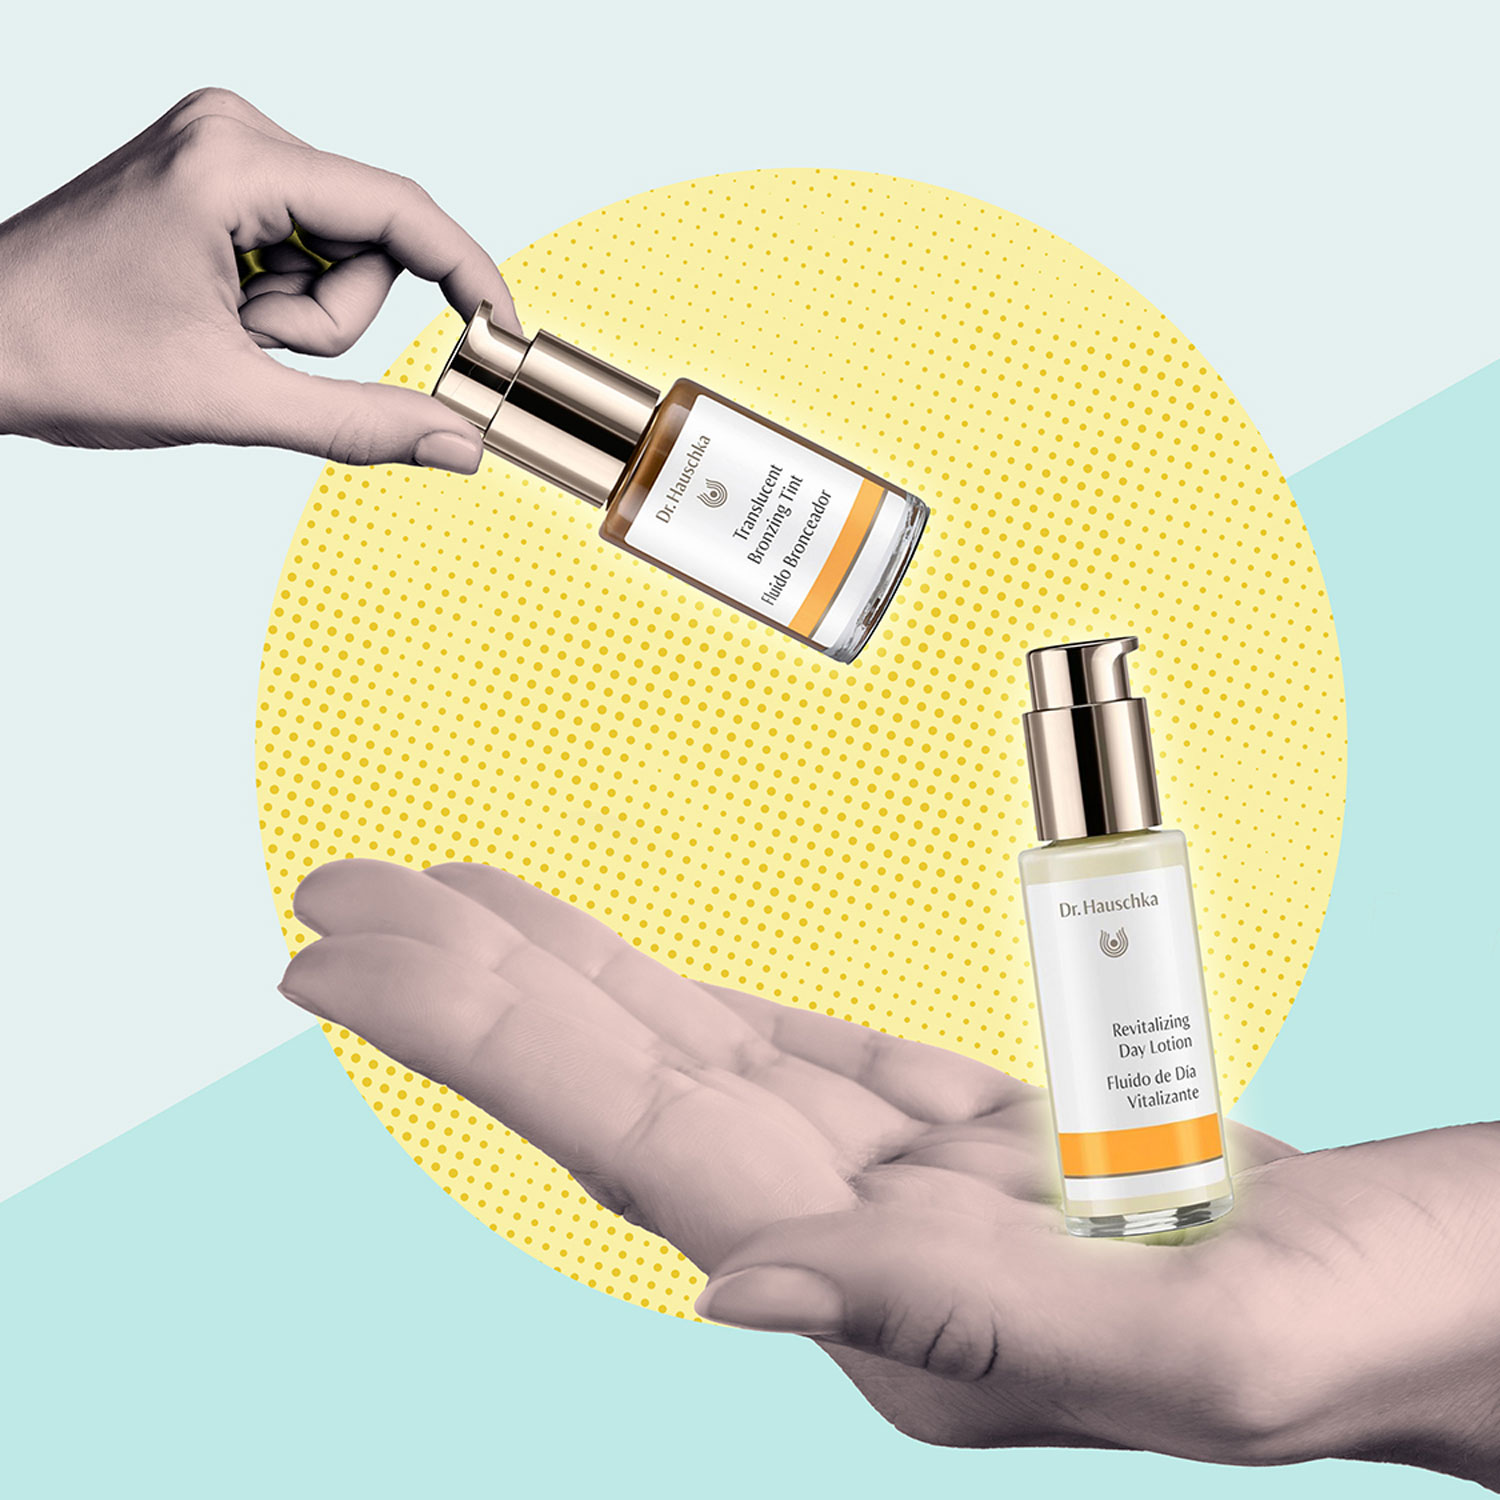 dr hauschka products